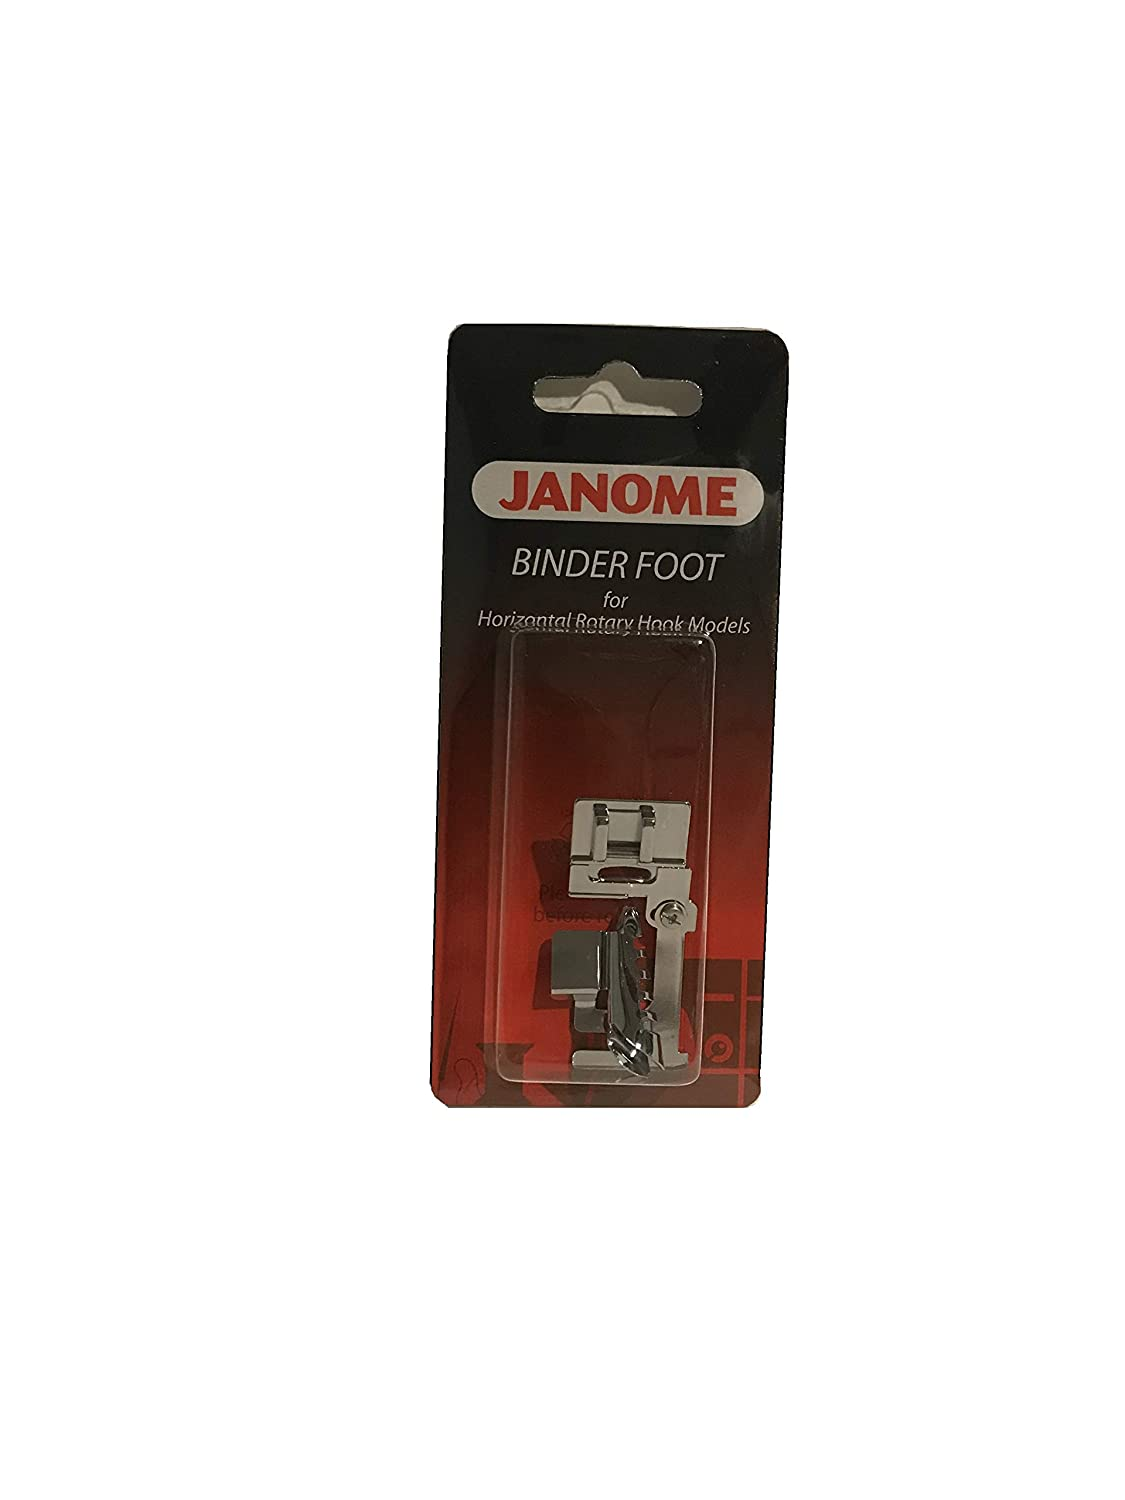 Janome Sewing Machine Foot Kit Janome Quilting Accessory Bundle for Standard Top Load Horizontal Rotary Hook Machines